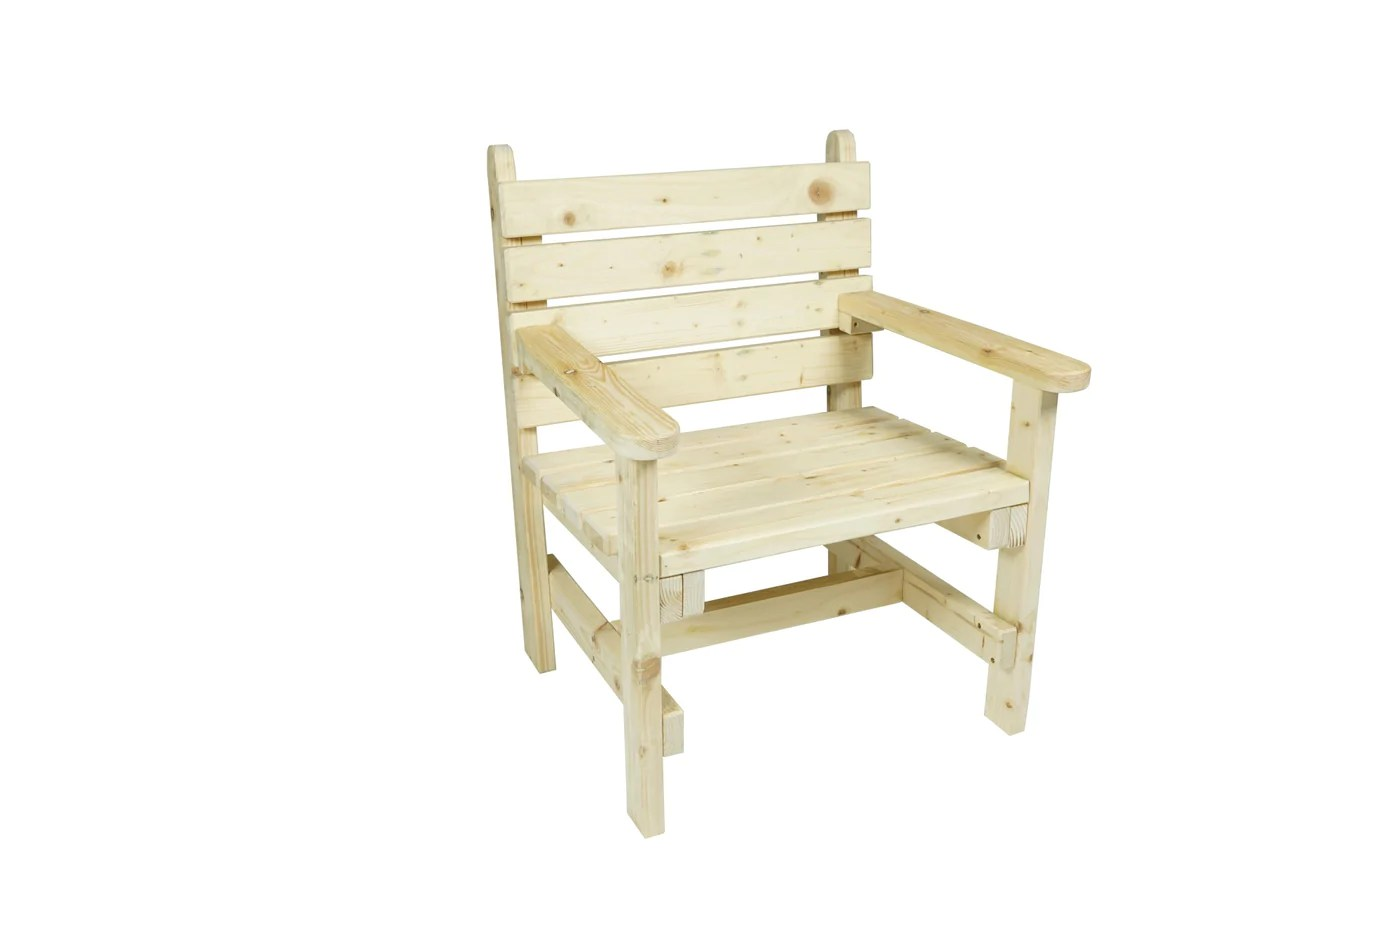 Single Chair Wood Shop The Home Of Upcycled Handmade Wood Products